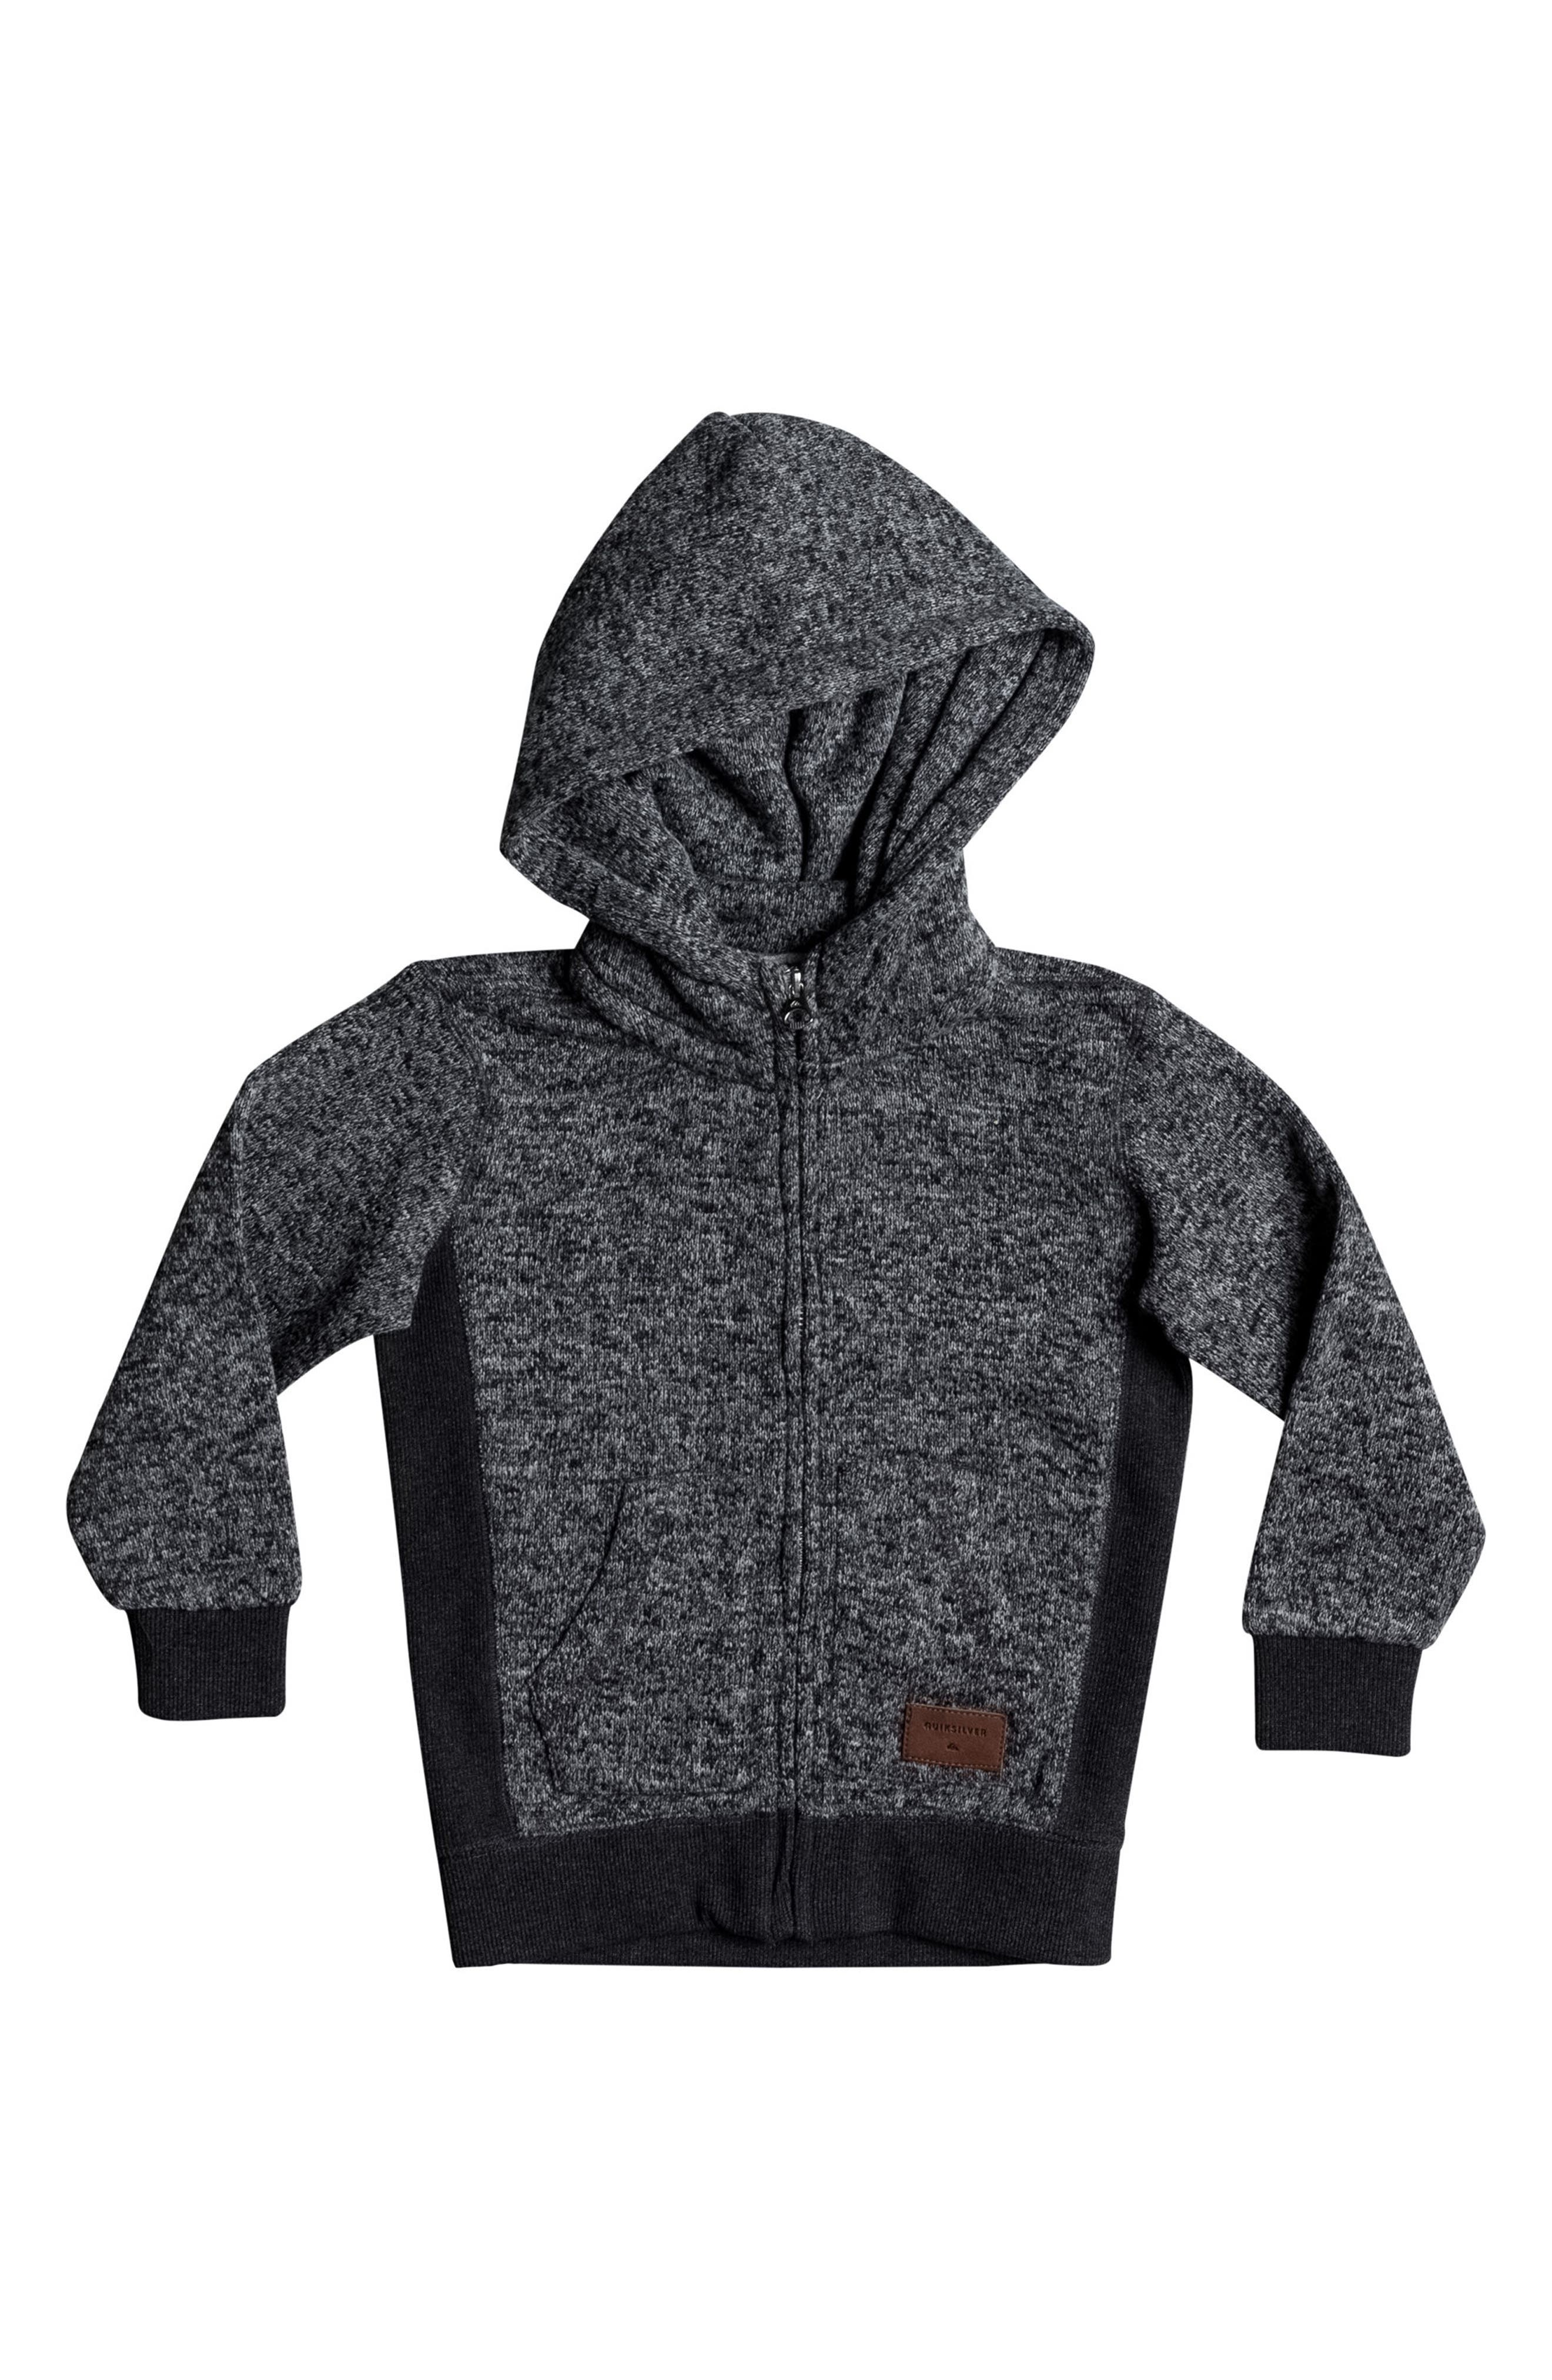 Quiksilver Keller Zip Hoodie (Toddler Boys & Little Boys)